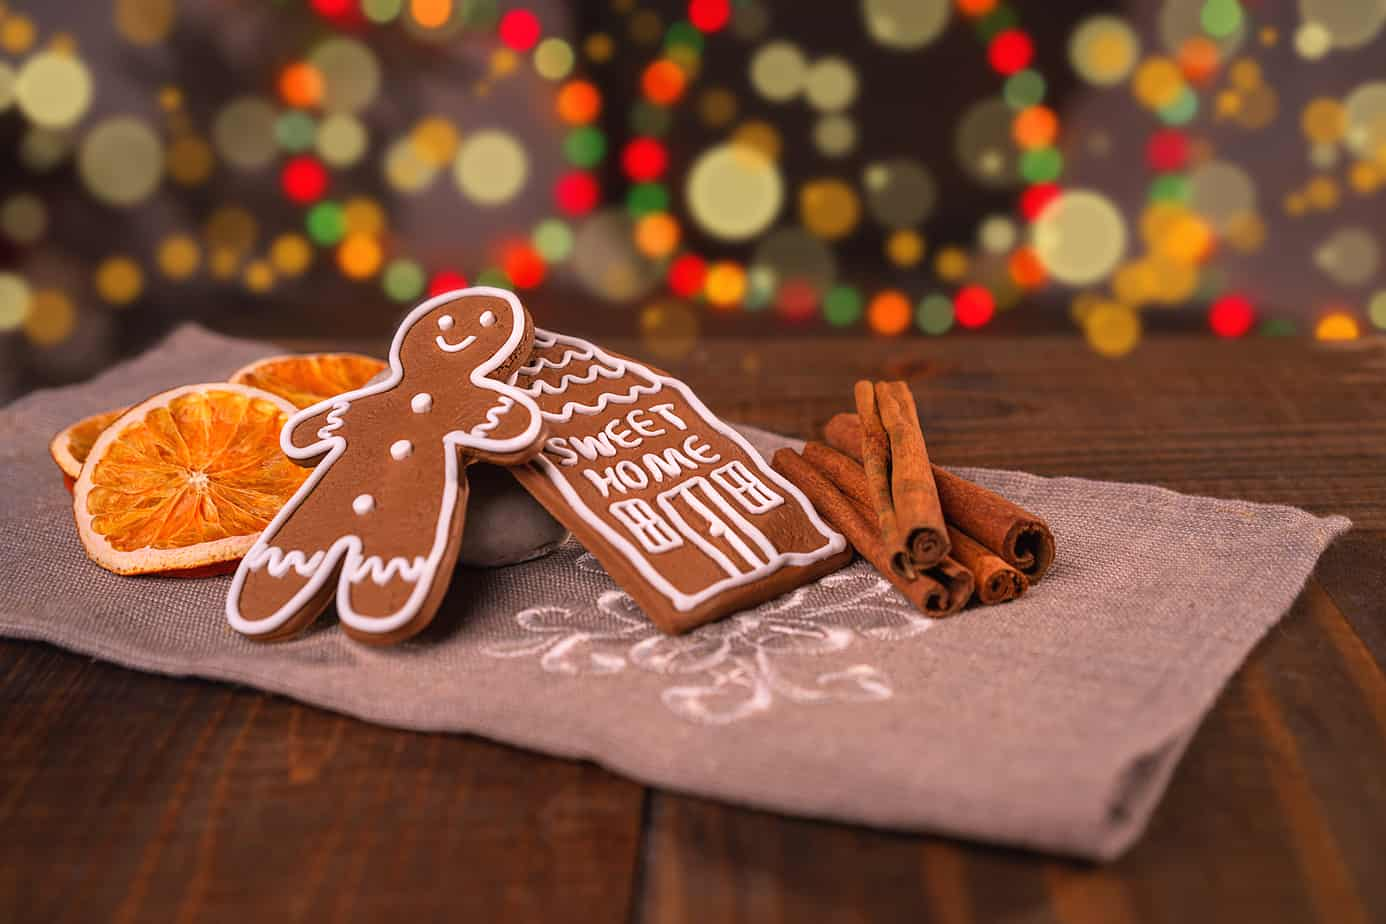 Christmas homemade gingerbread cookies on wooden table, slices of dry orange and colored lights on background. gingerbread man house